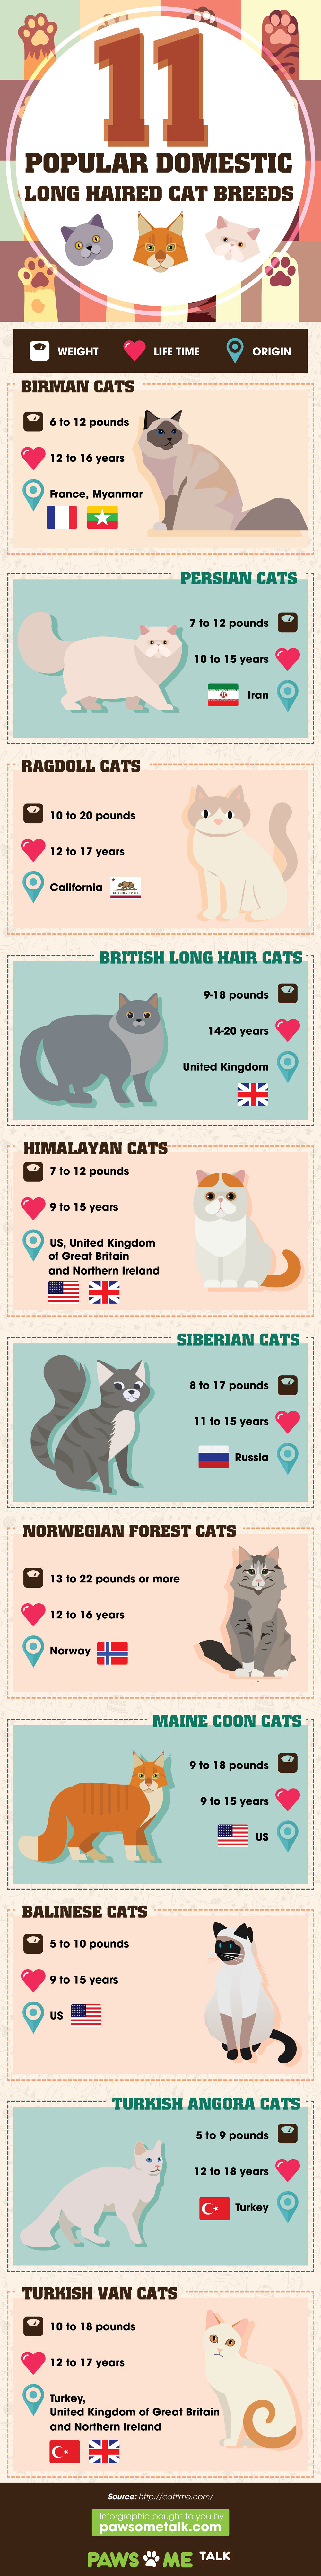 Long Haired Cats That Are Very Pettable - Infographic